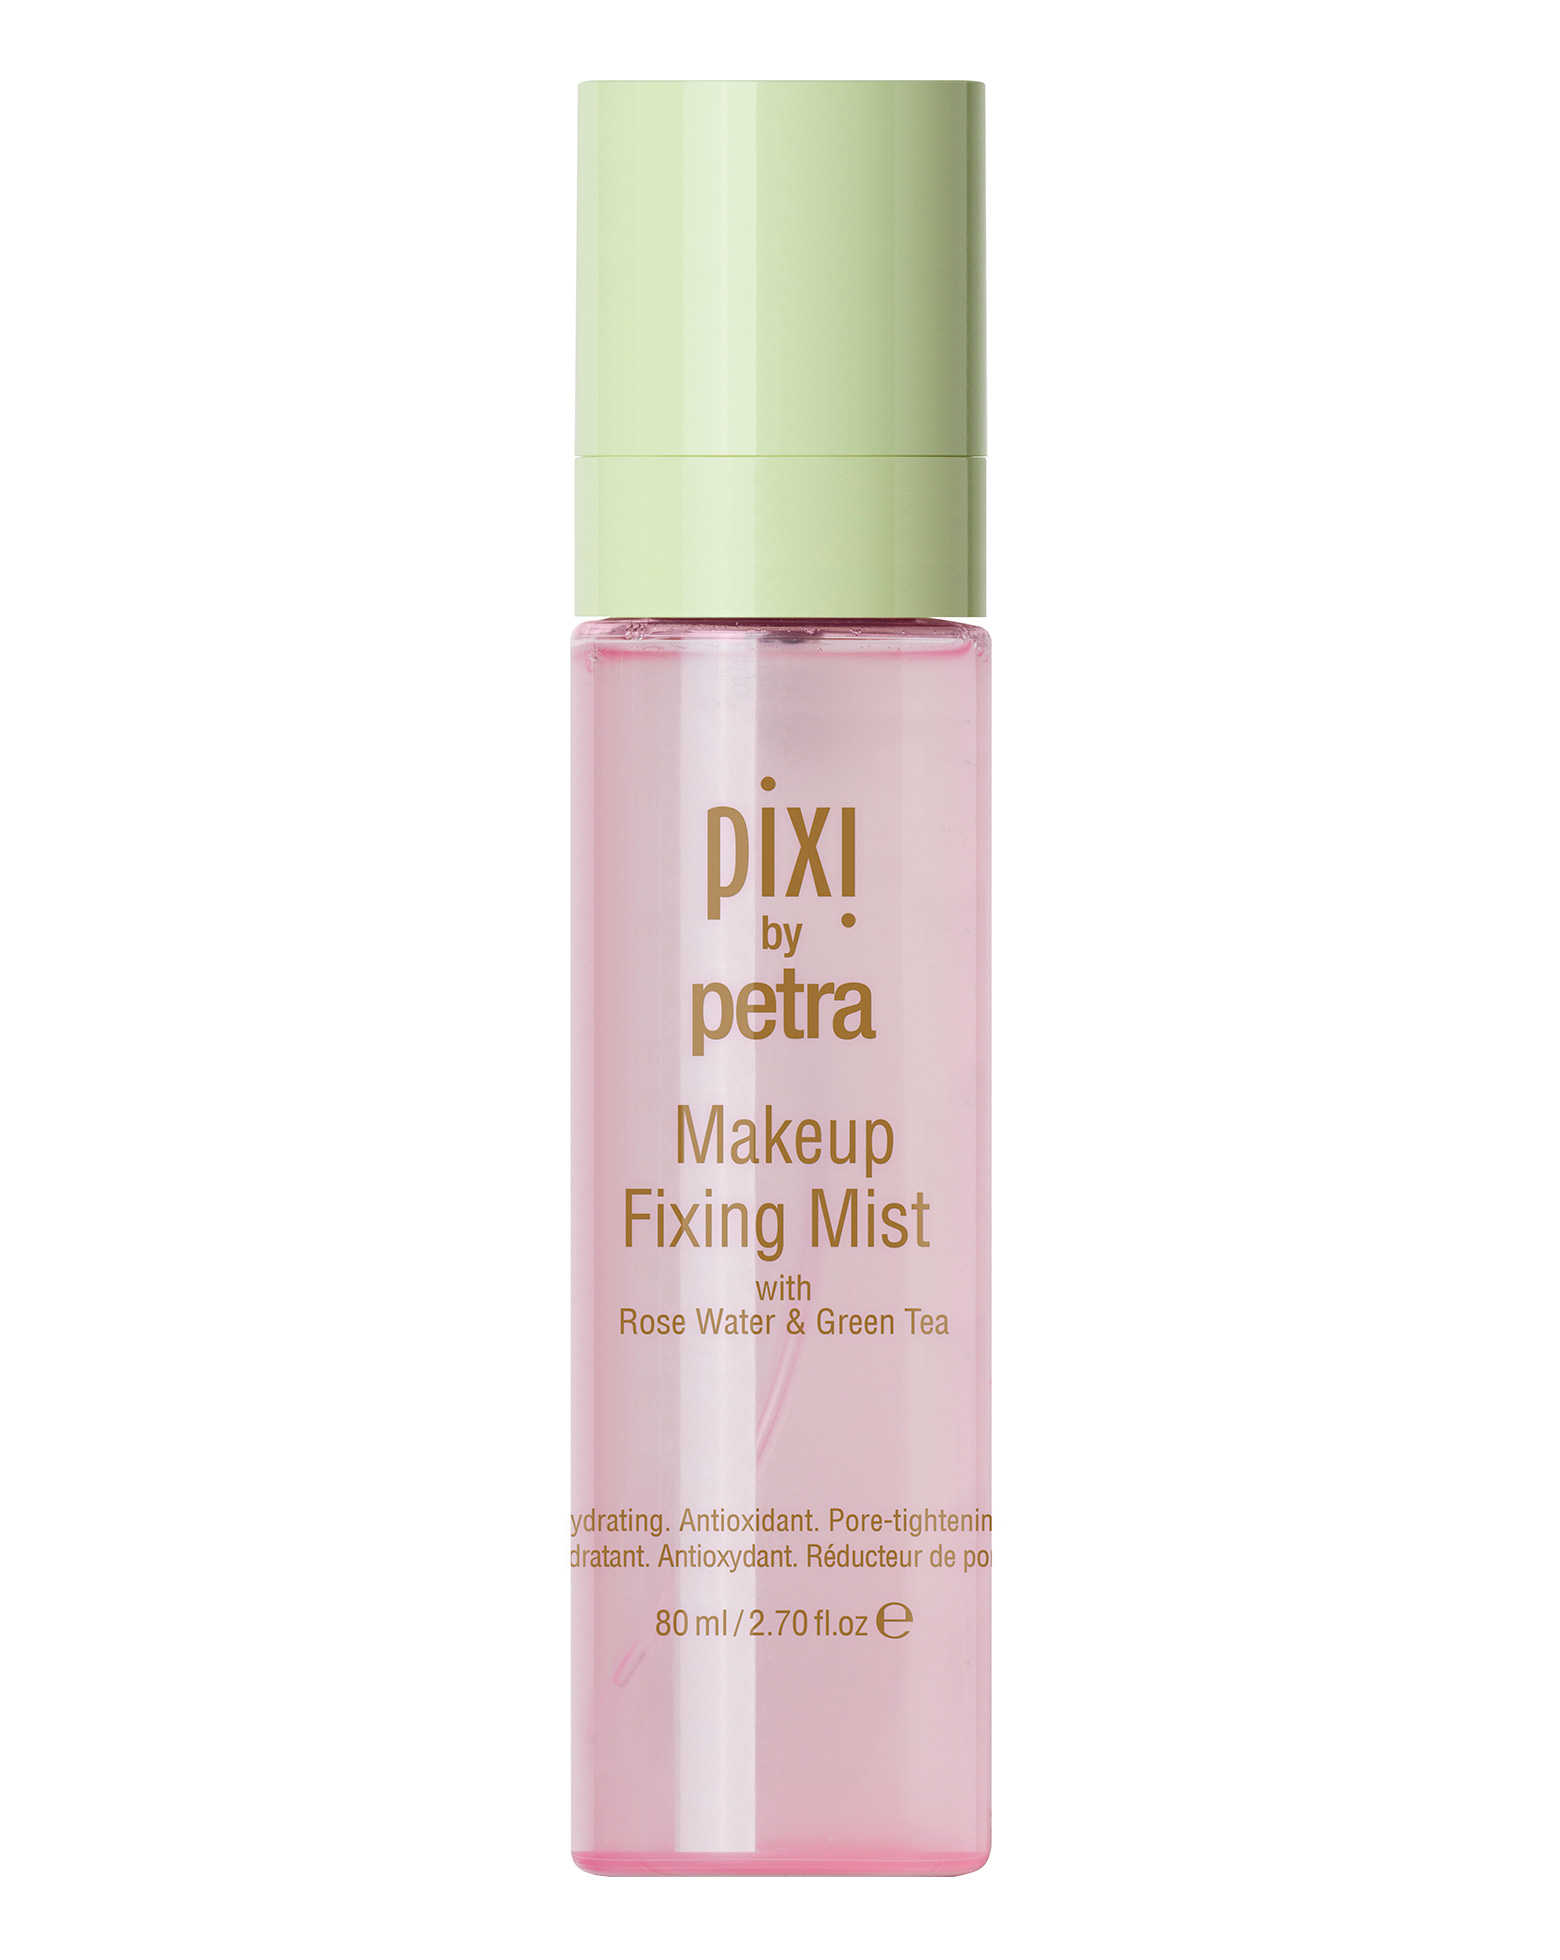 Make Up Fixing Mist Pixi Beauty In Uk Pixi